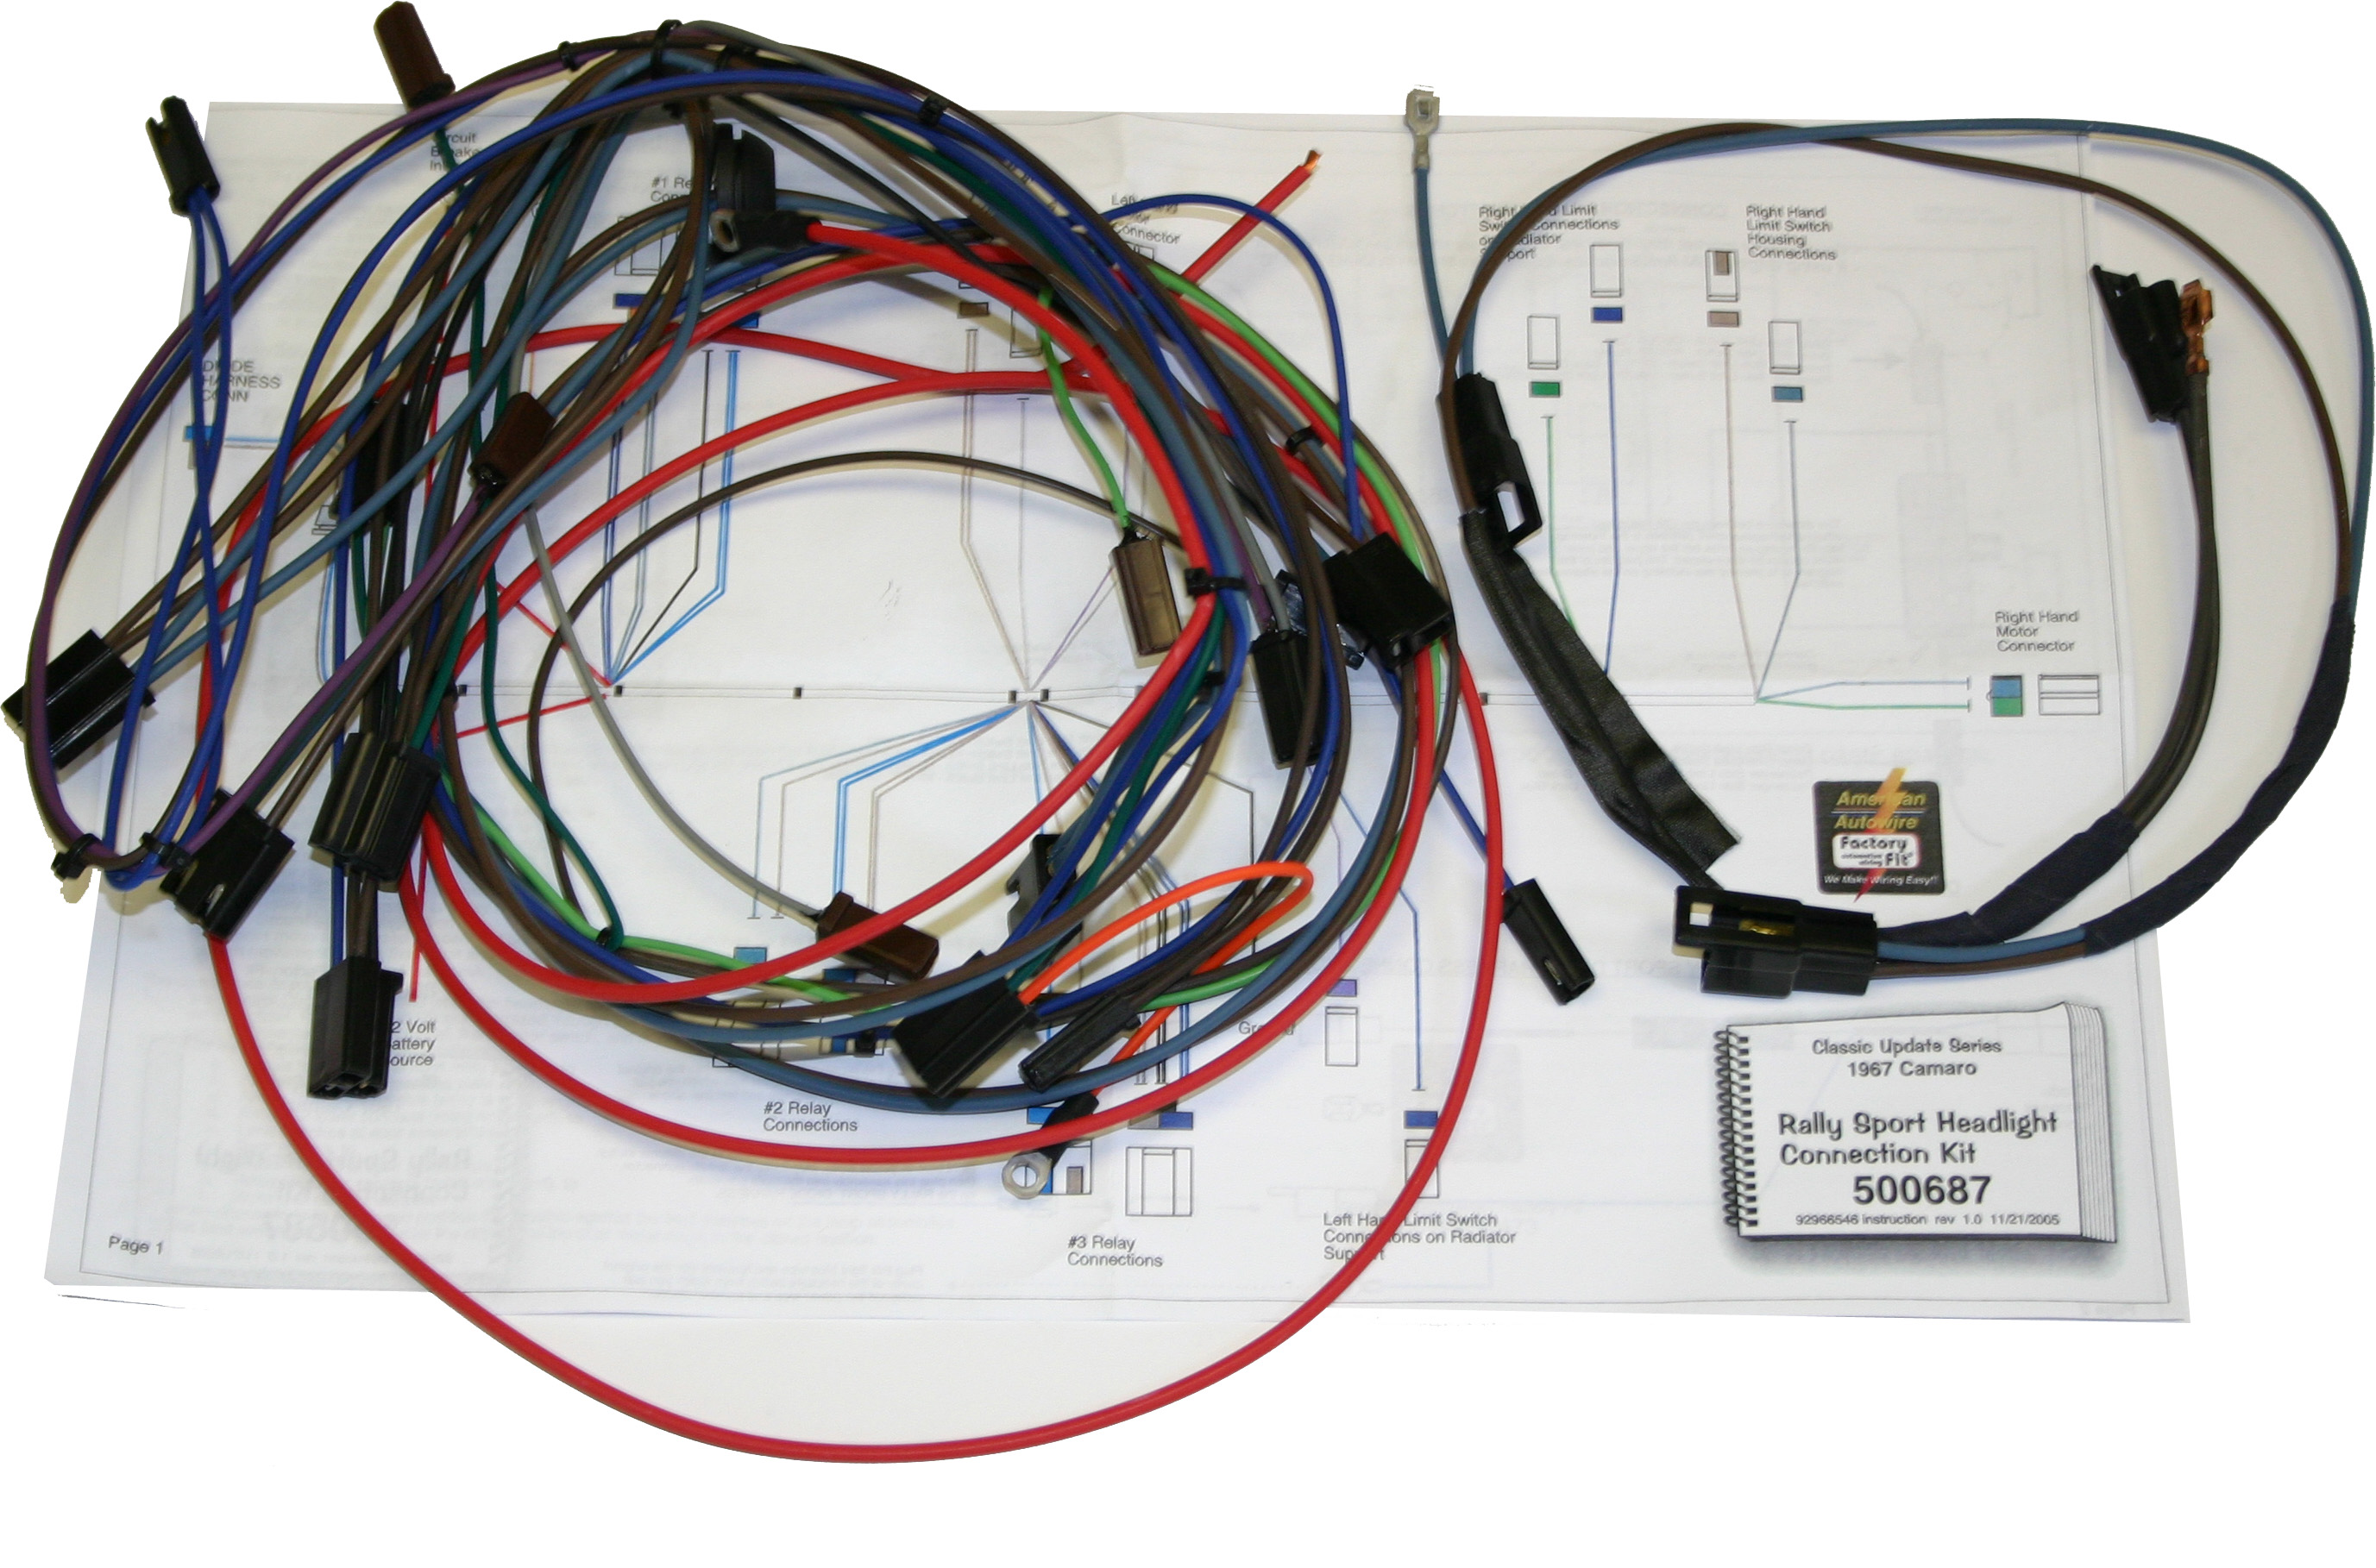 67 68 Camaro Classic Update Wiring Harness 500661 Firebird Diagram